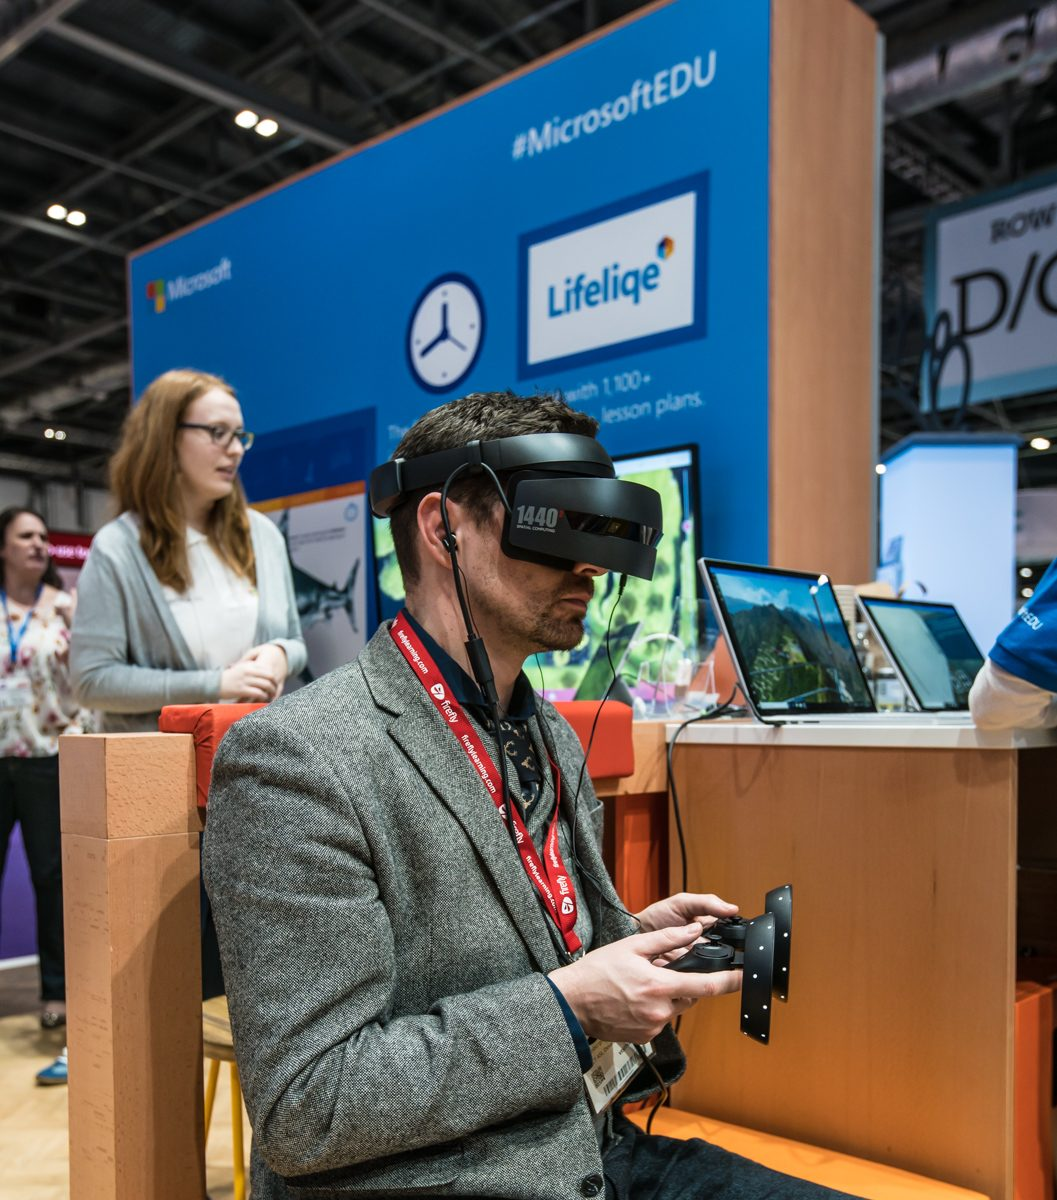 Bett 2018 show microsoft dell emc 360 research chromebook stem hack education vr ar